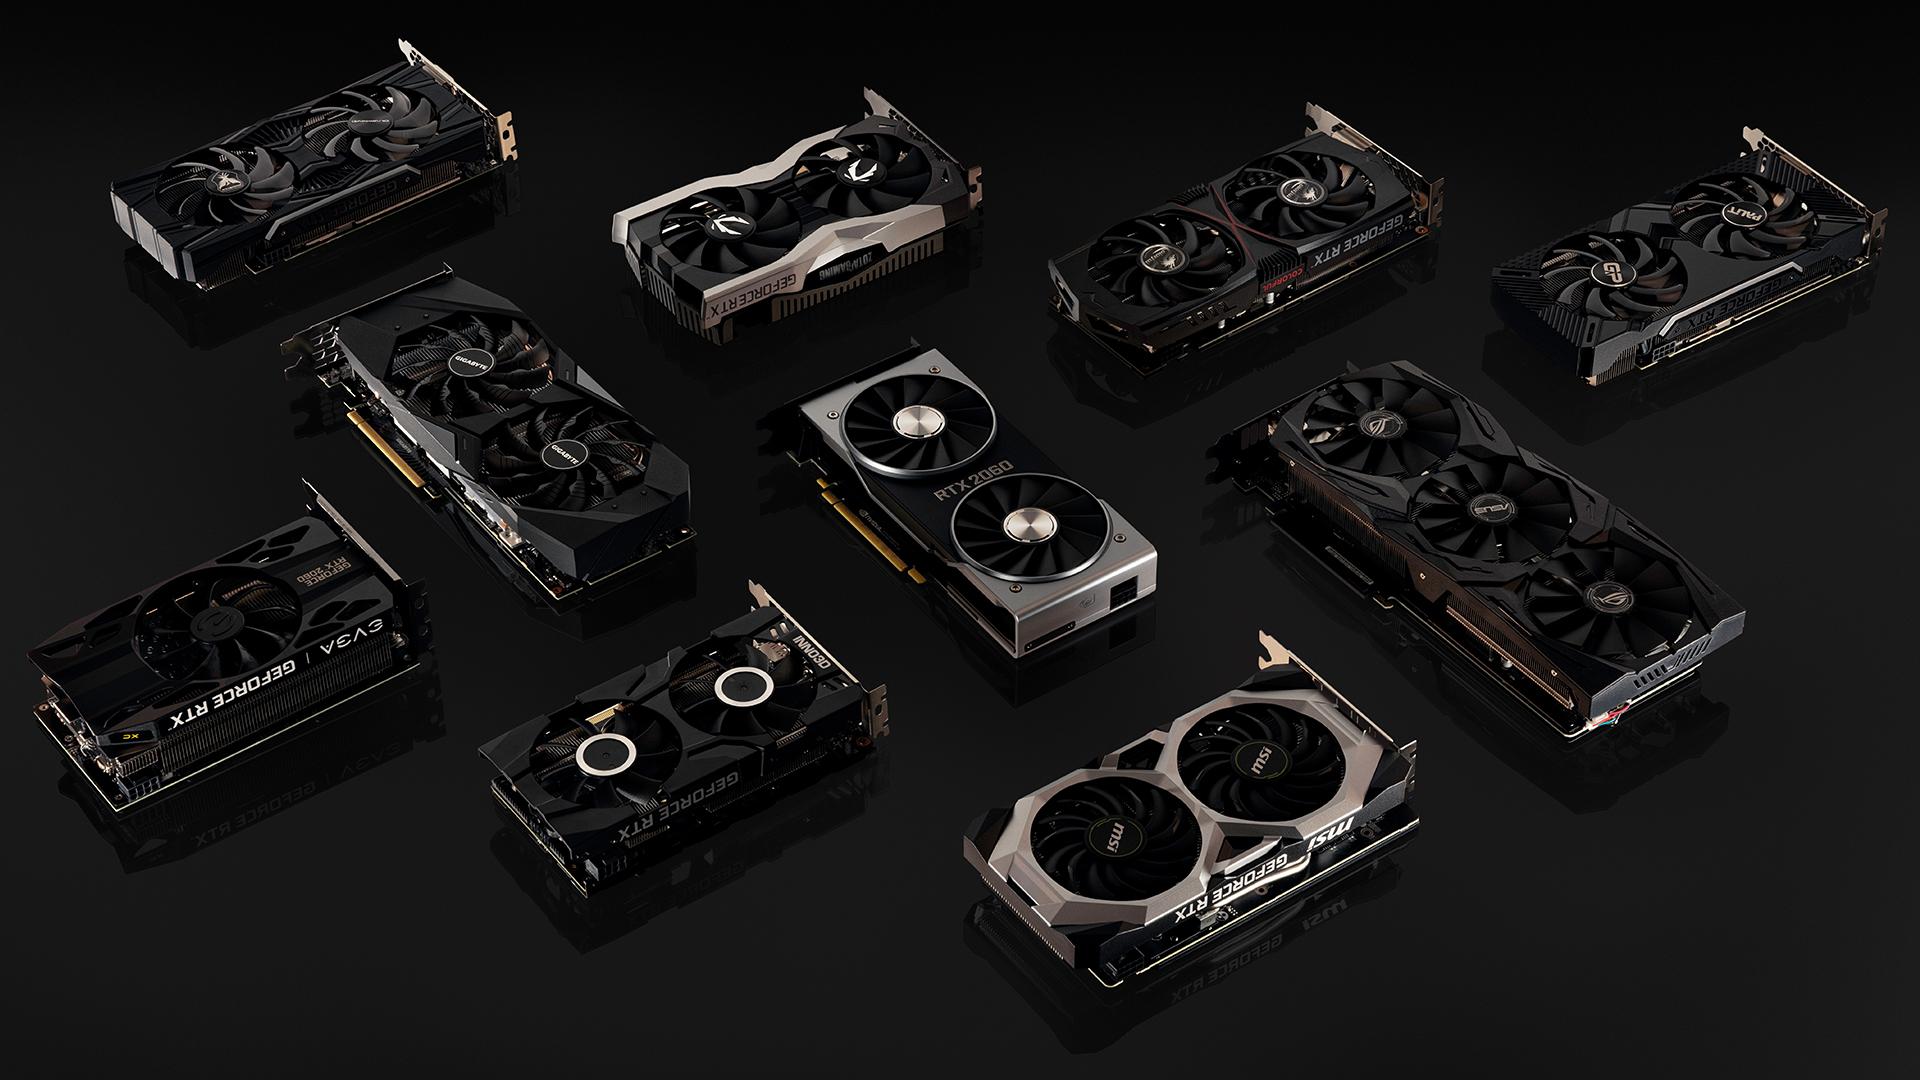 GeForce RTX 2060 AIC cards